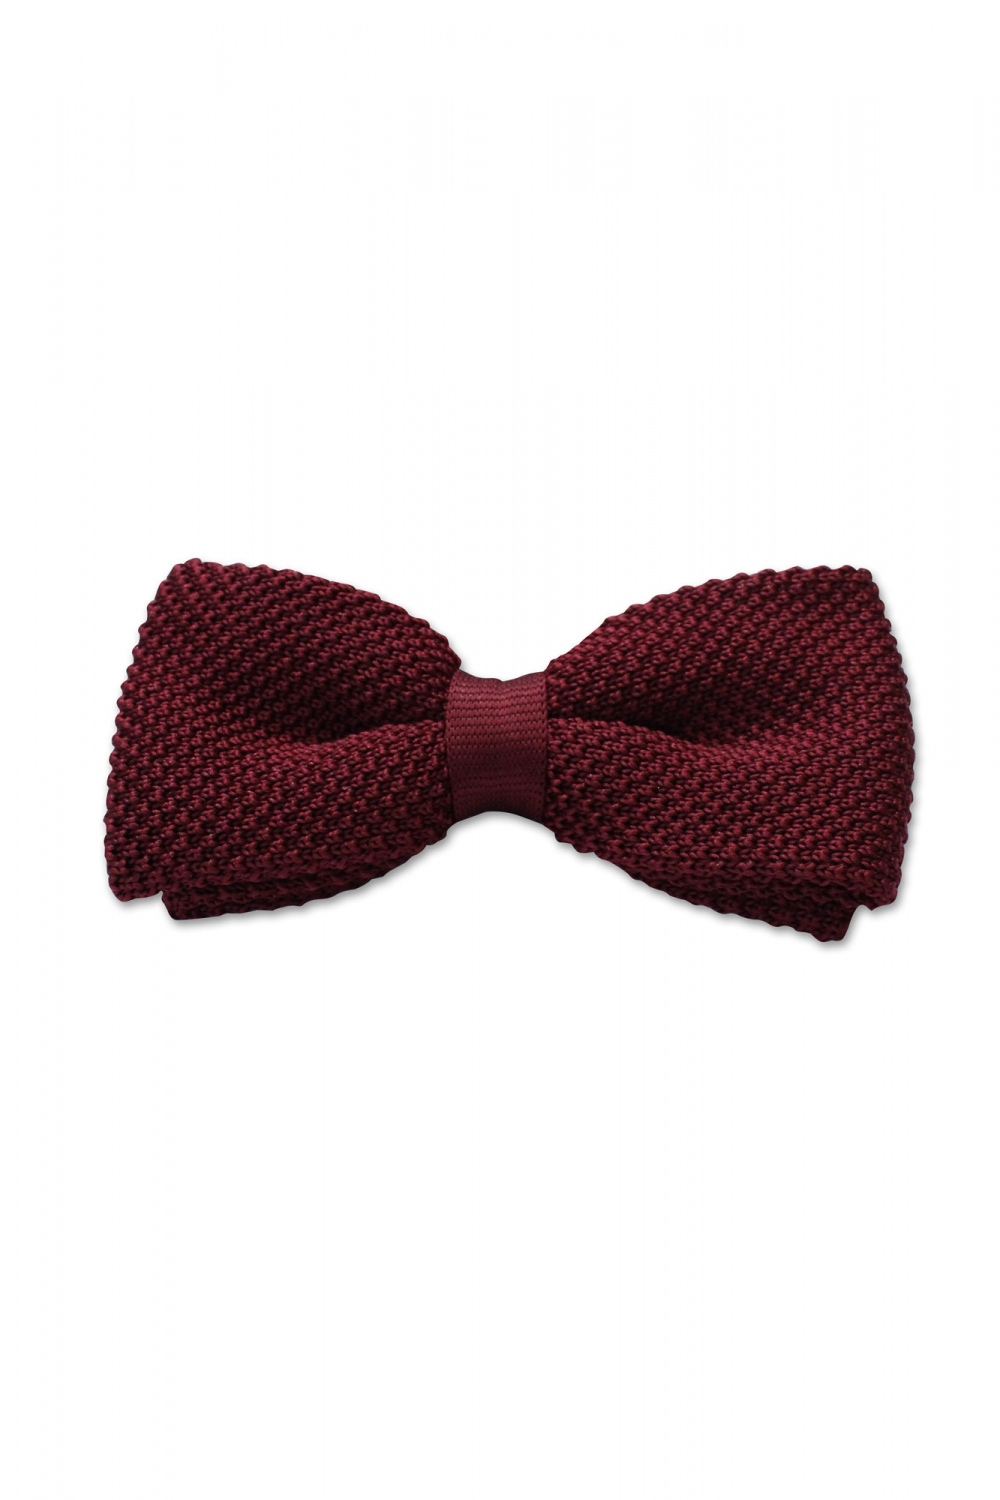 Noose & Monkey Bowie Plain Knitted Bow Tie Burgundy